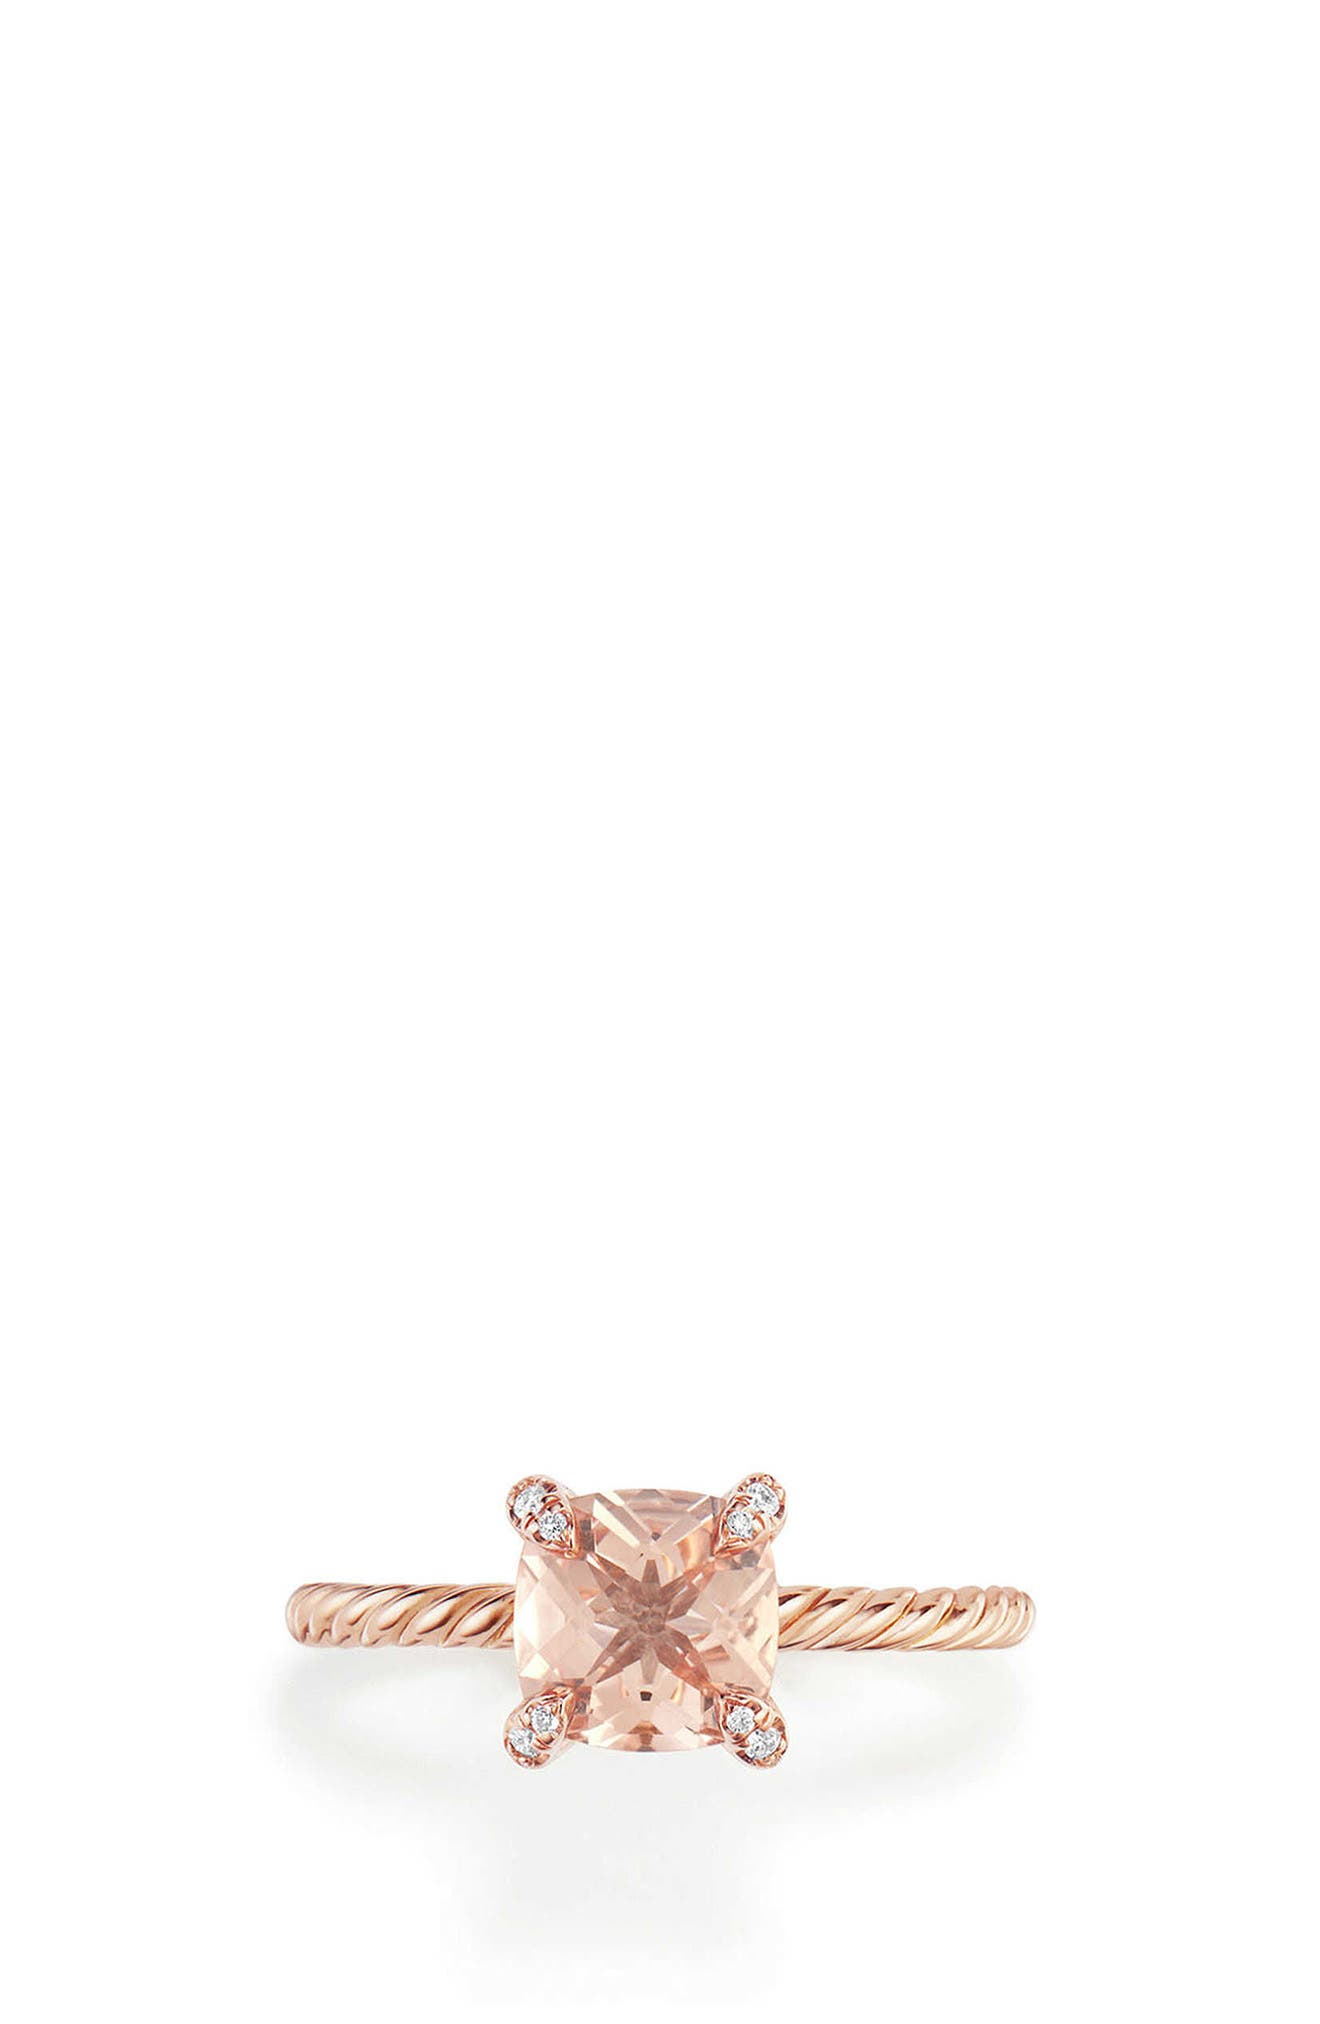 DAVID YURMAN, Chatelaine Ring with Morganite and Diamonds in 18K Rose Gold, Main thumbnail 1, color, ROSE GOLD/ DIAMOND/ MORGANITE